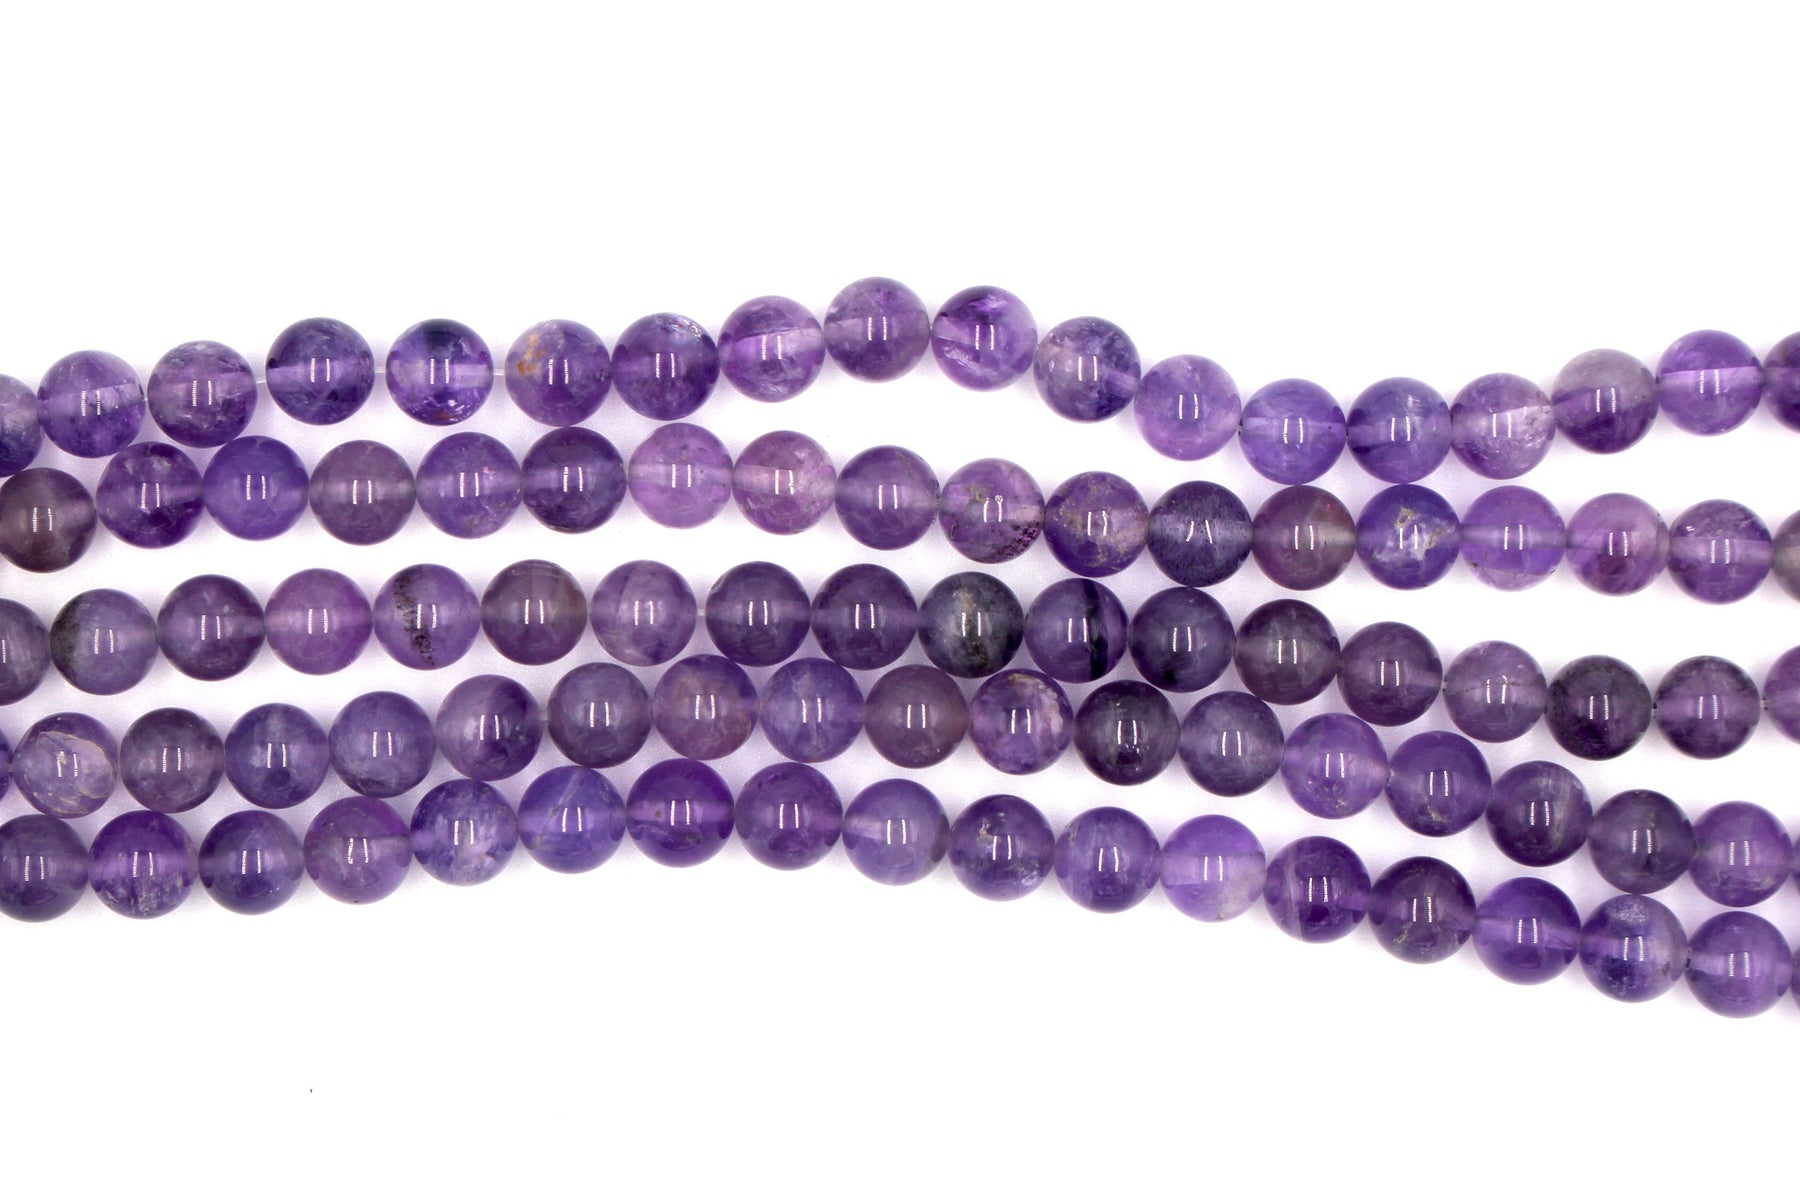 8mm Amethyst, glossy, 1 strand, 16 inches, approx. 48 beads.